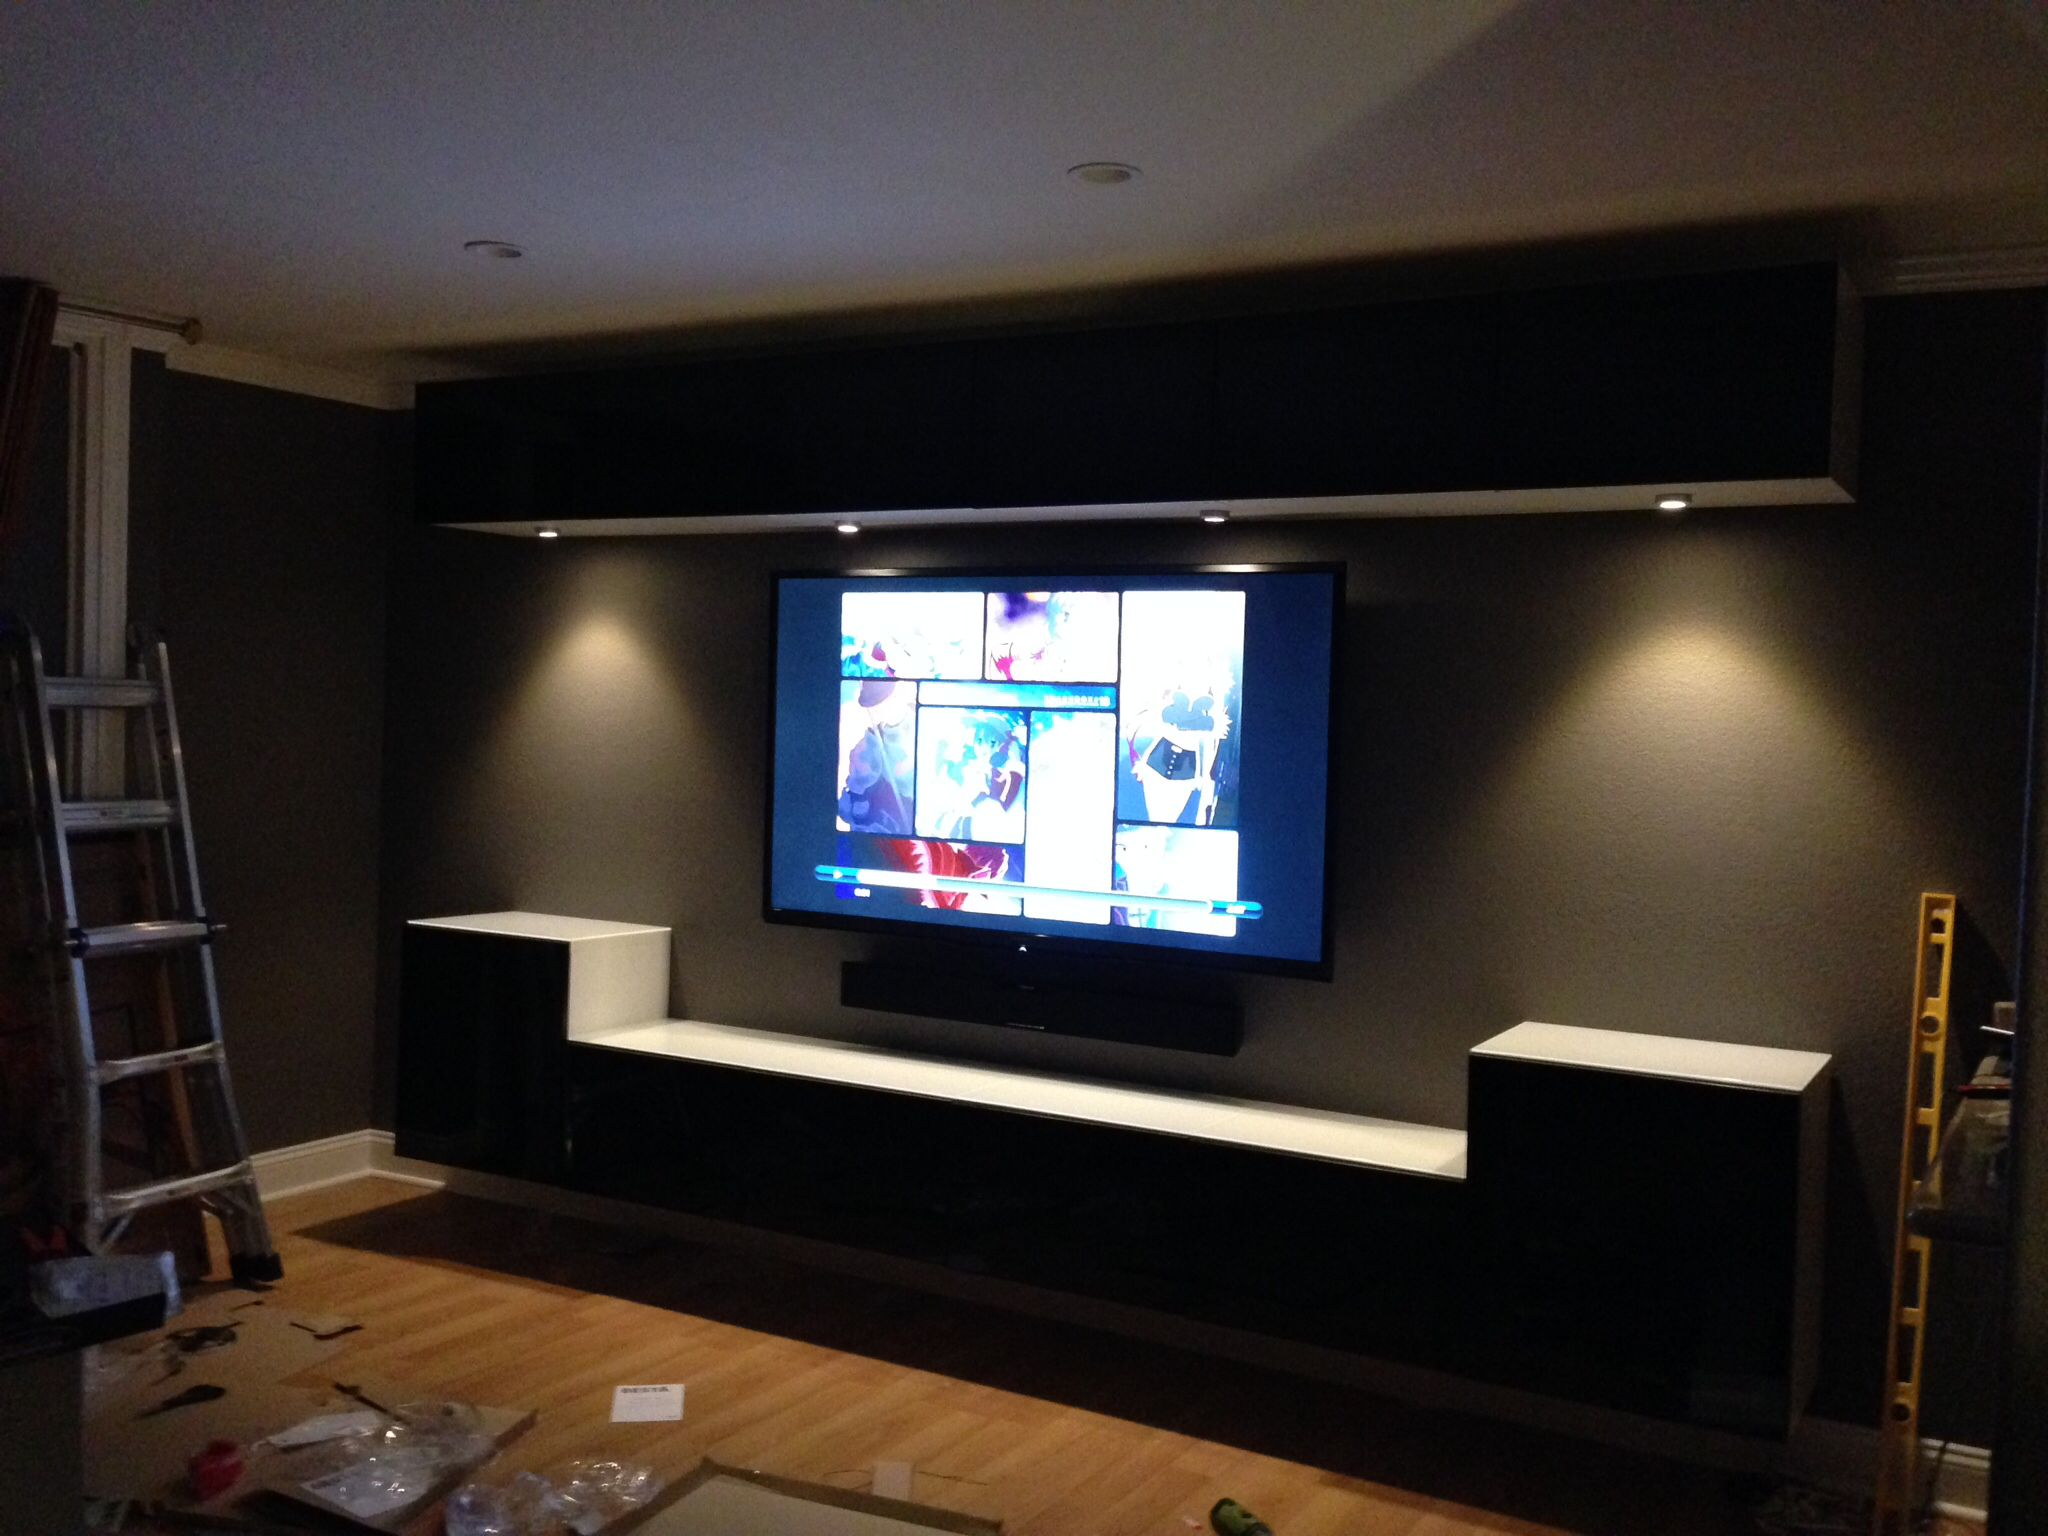 Wall Hanging Entertainment Center wall mounted ikea bestas and under cabinet lights with smoked